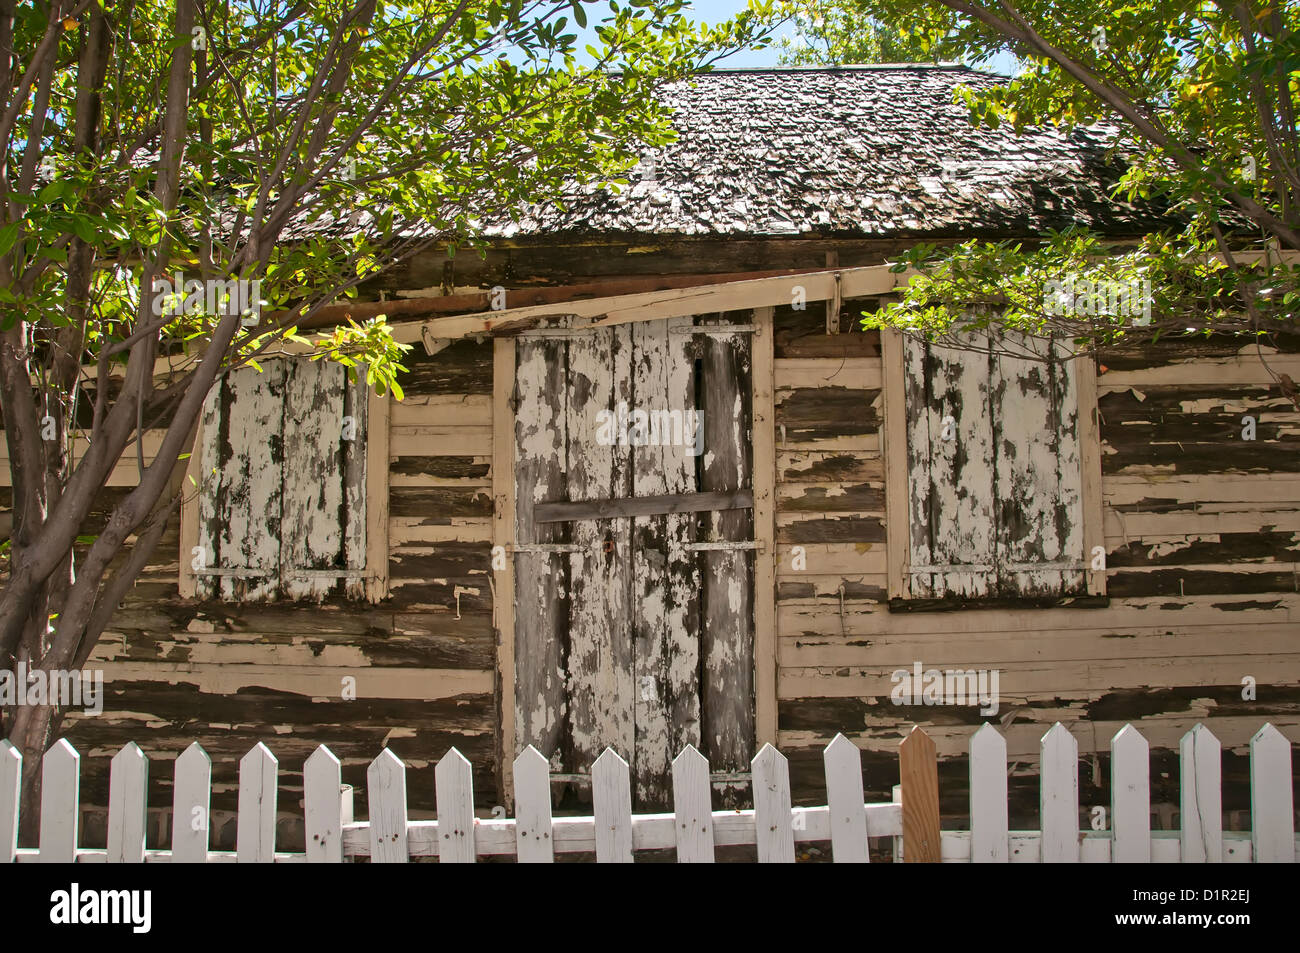 Old boarded up wooden house, Gustavia, Saint Barthelemy - Stock Image